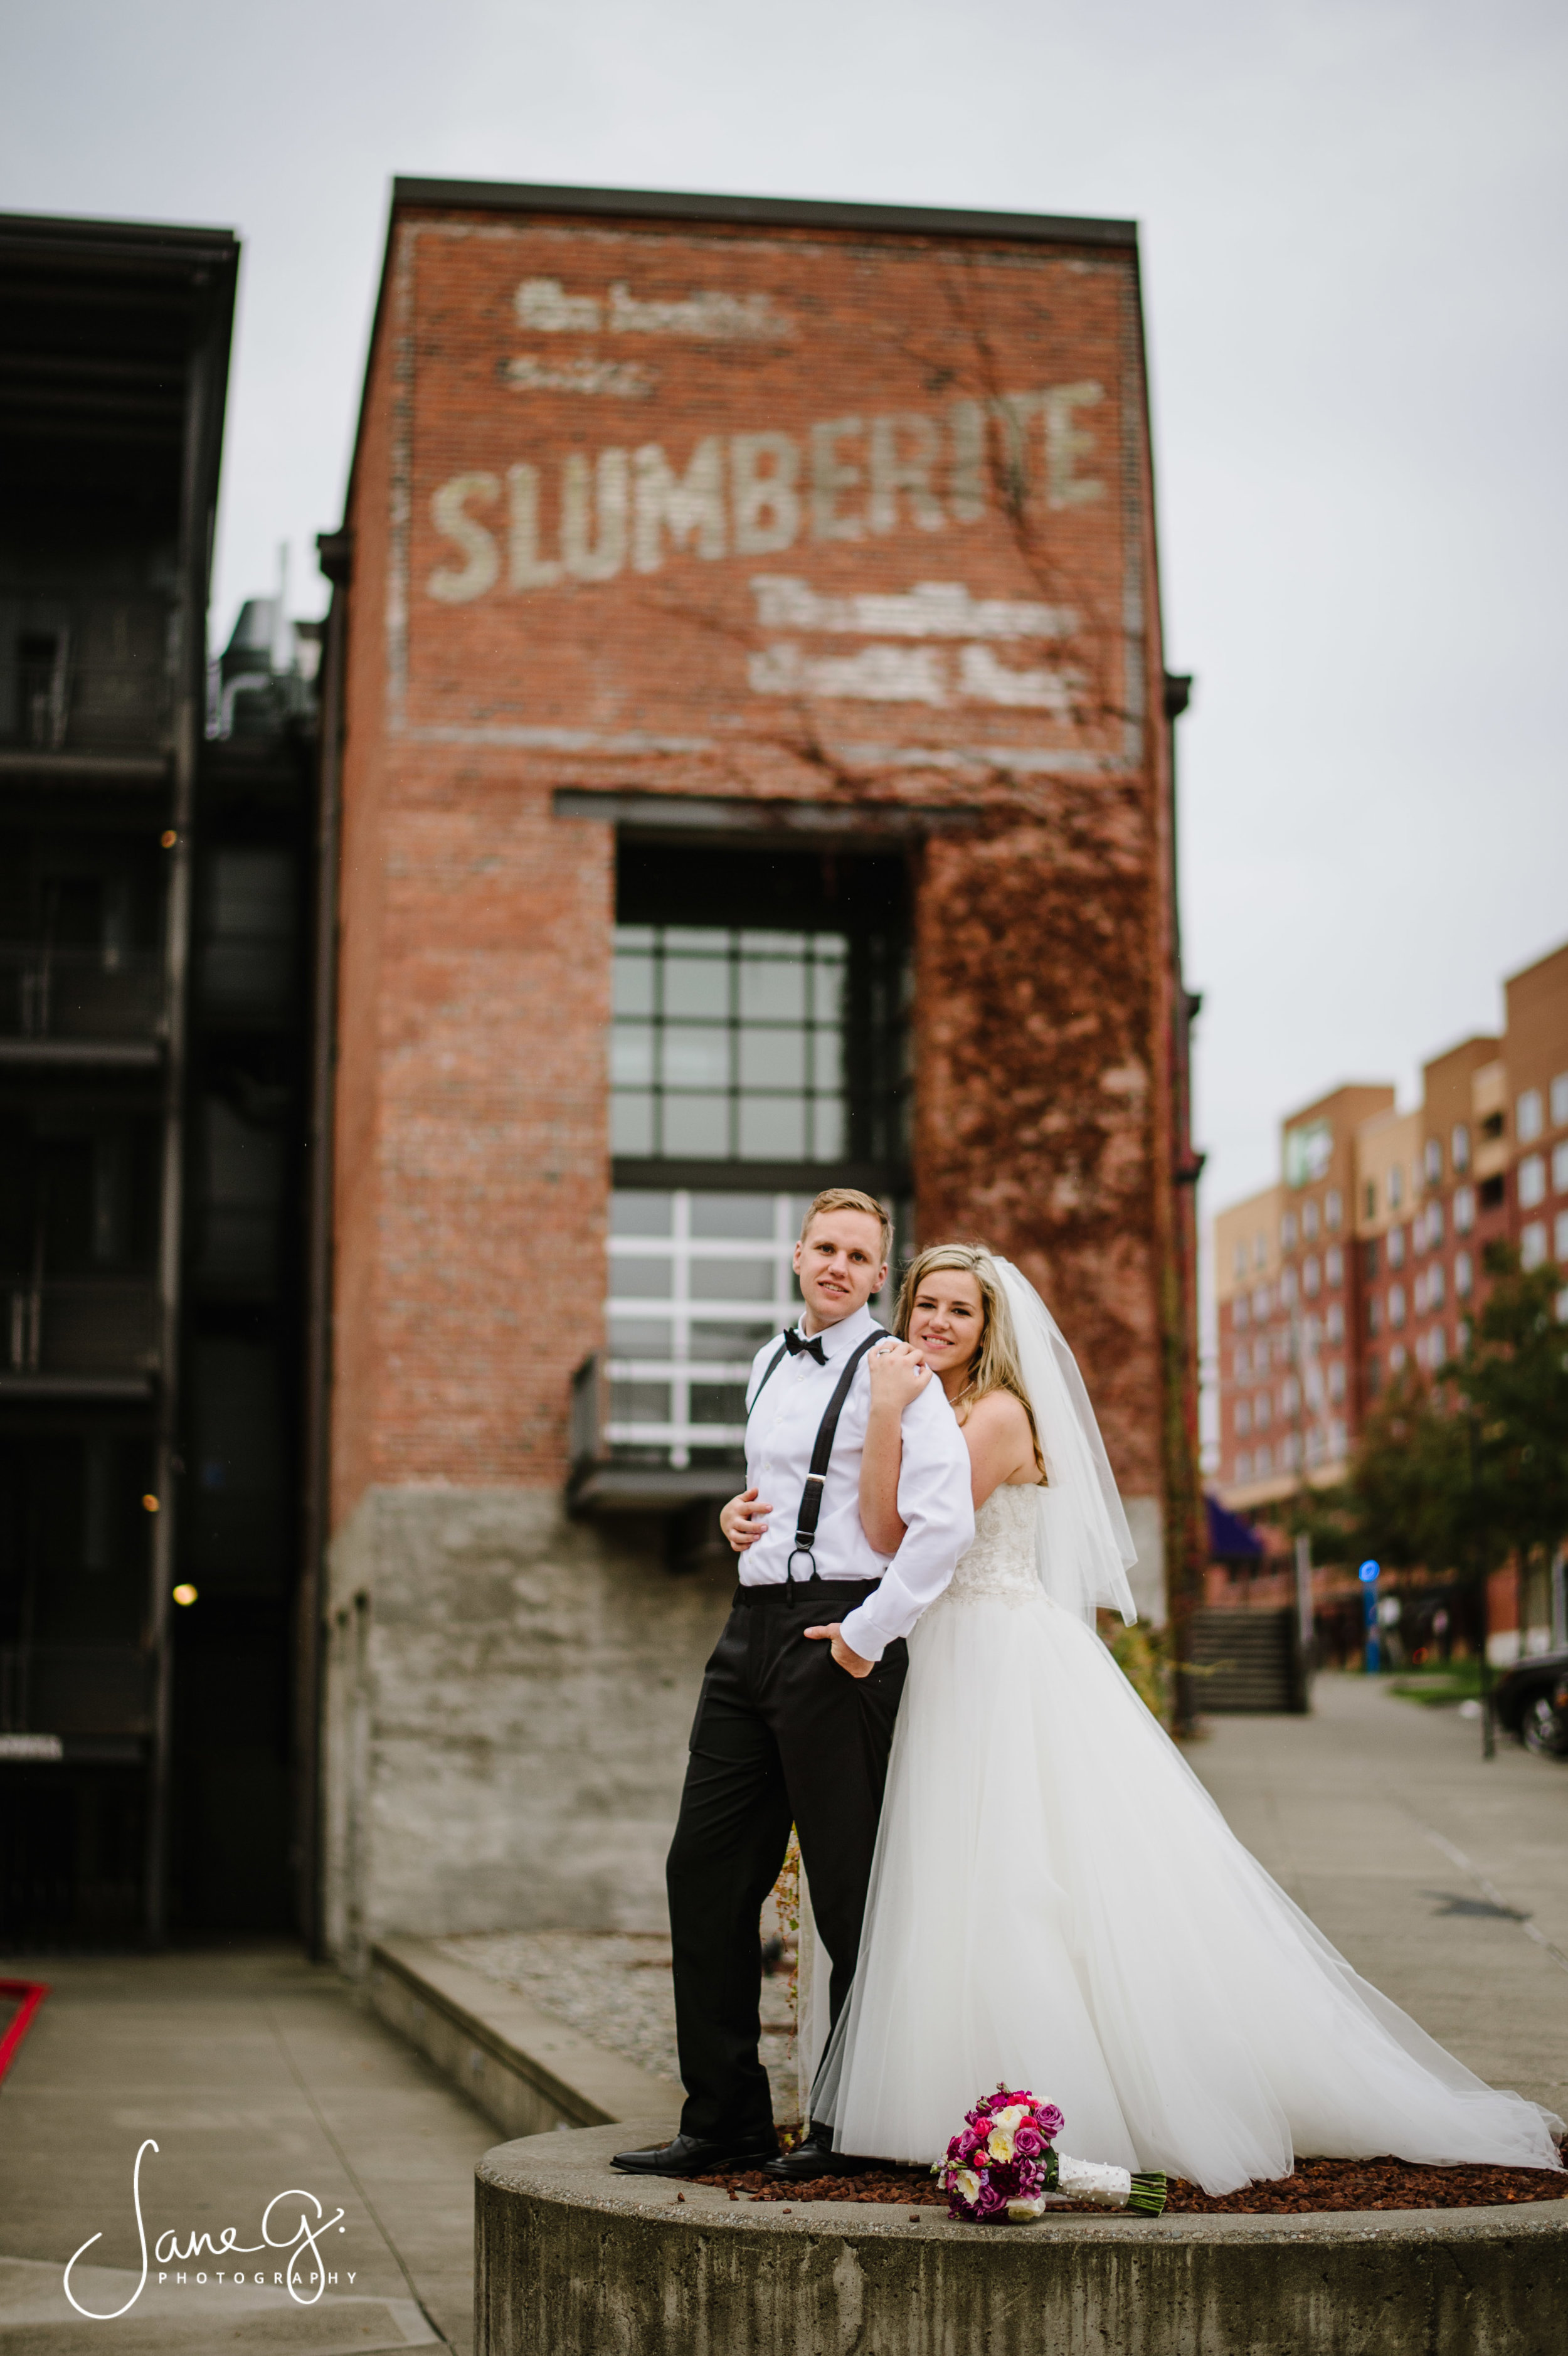 AllisonandJeremyWed_JaneGPhoto-712.jpg